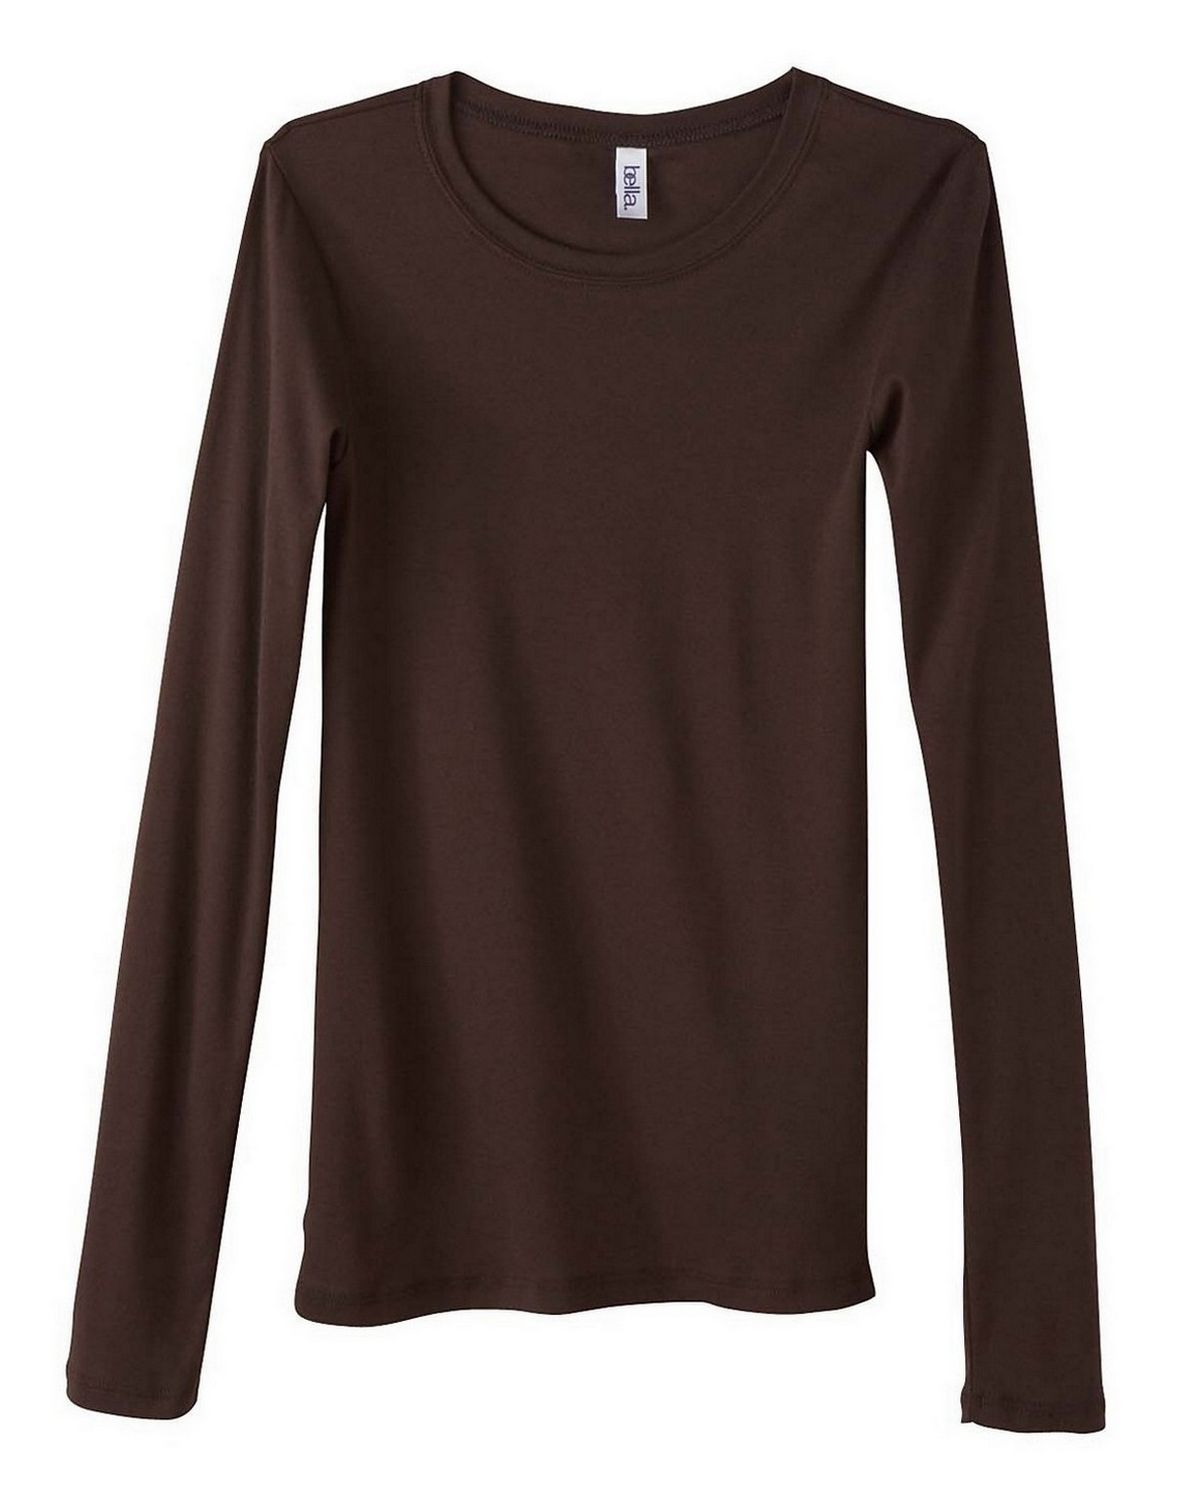 Bella + Canvas 8751 Ladies Sheer Mini Rib Long-Sleeve T-Shirt - Chocolate - S 8751